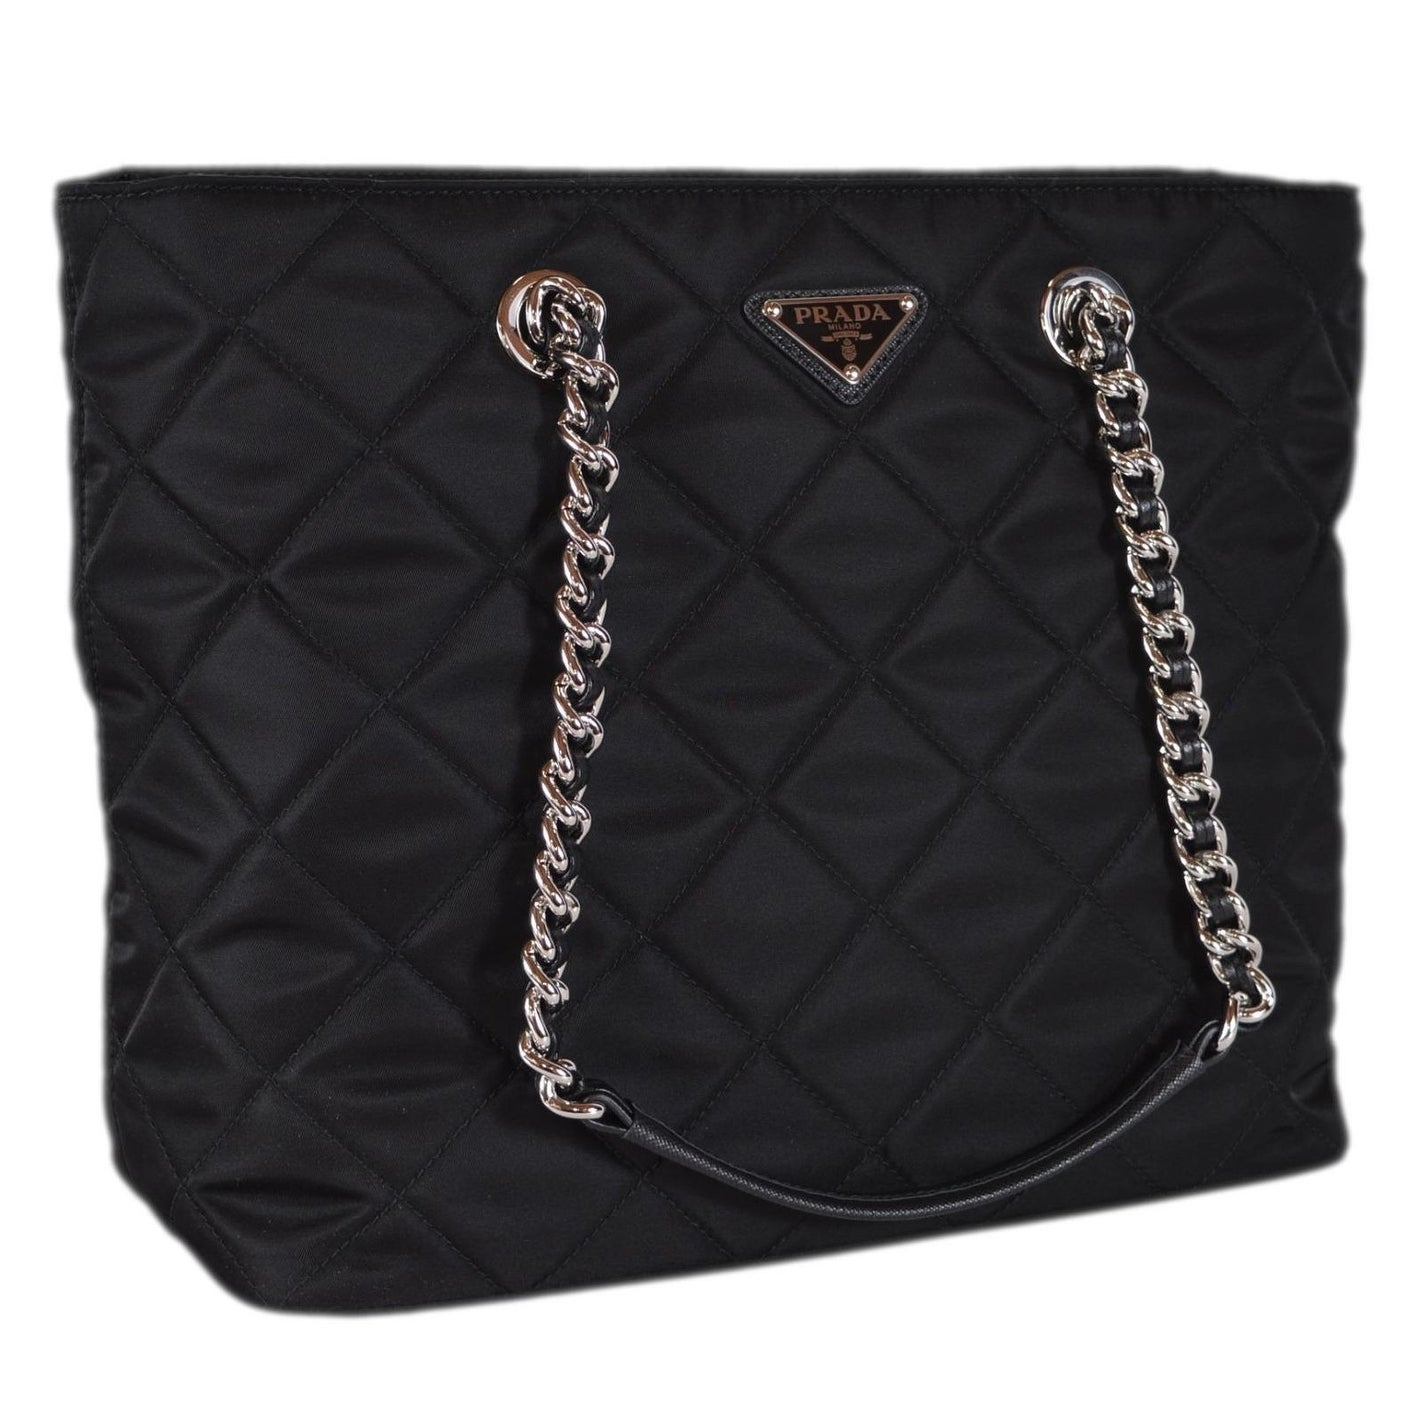 ... new zealand shop prada black 1bg017 black tessuto quilted nylon chain  strap purse tote on sale ... 6f0a9cfe93f71